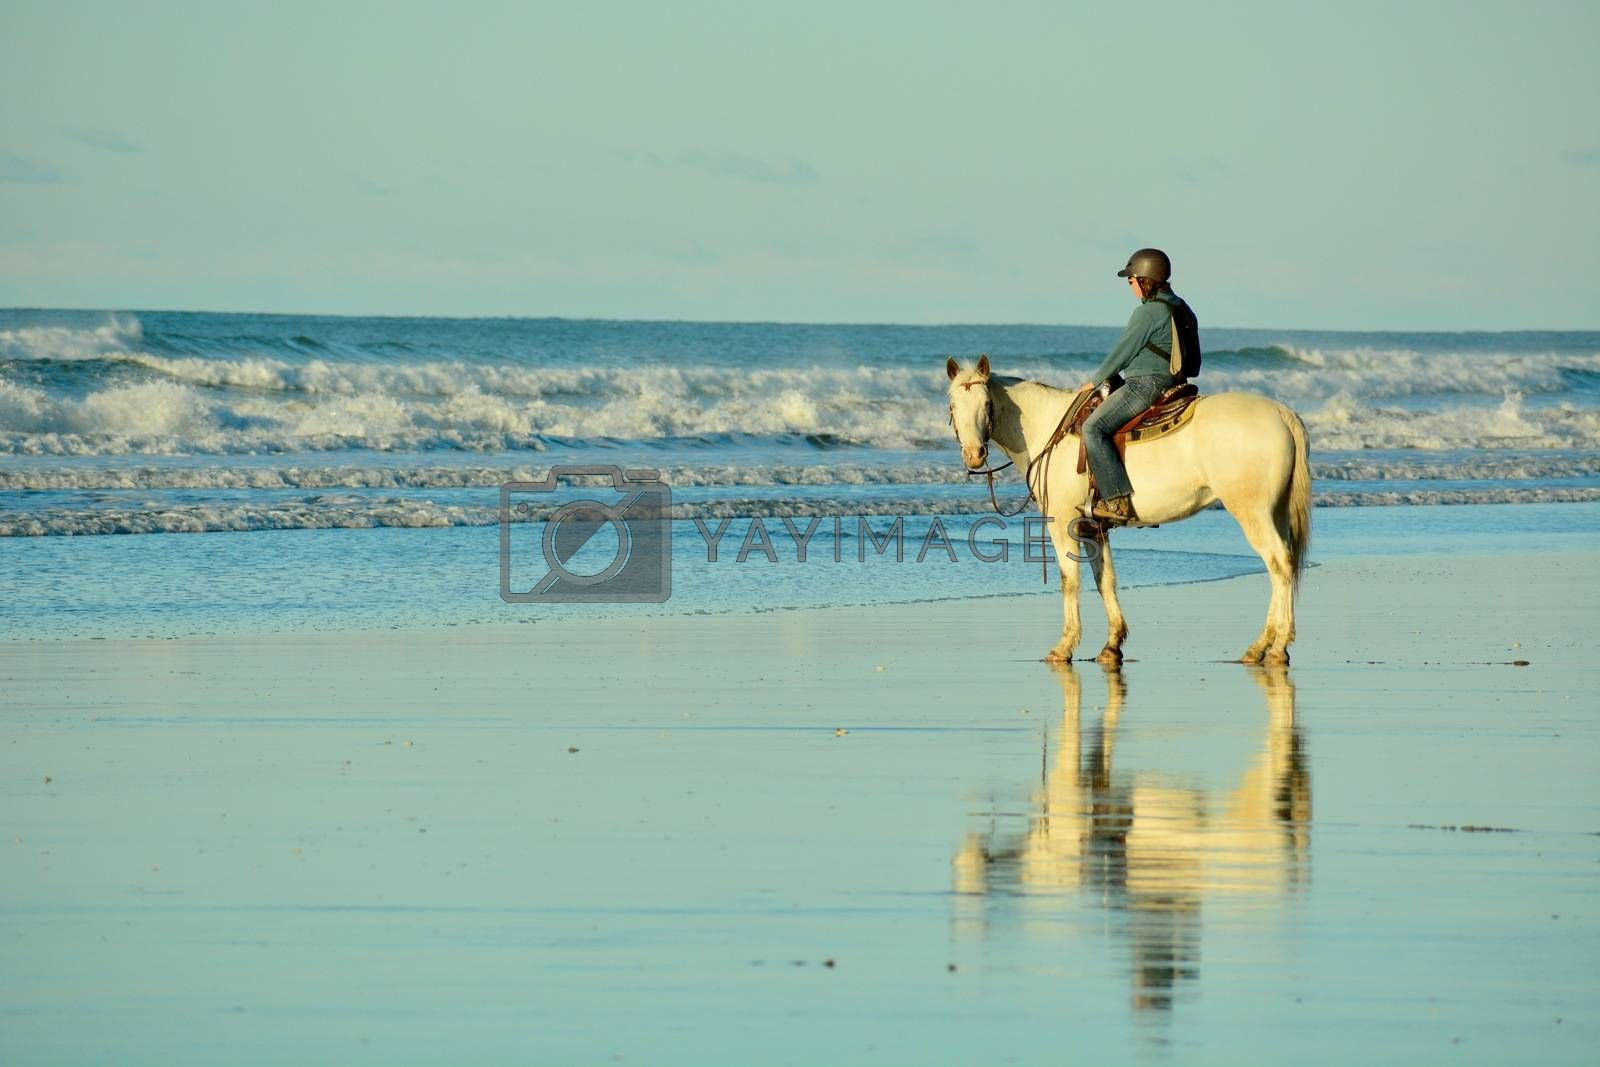 Holidays at the sea; winter time in New Zealand; riding a horse at a seashore